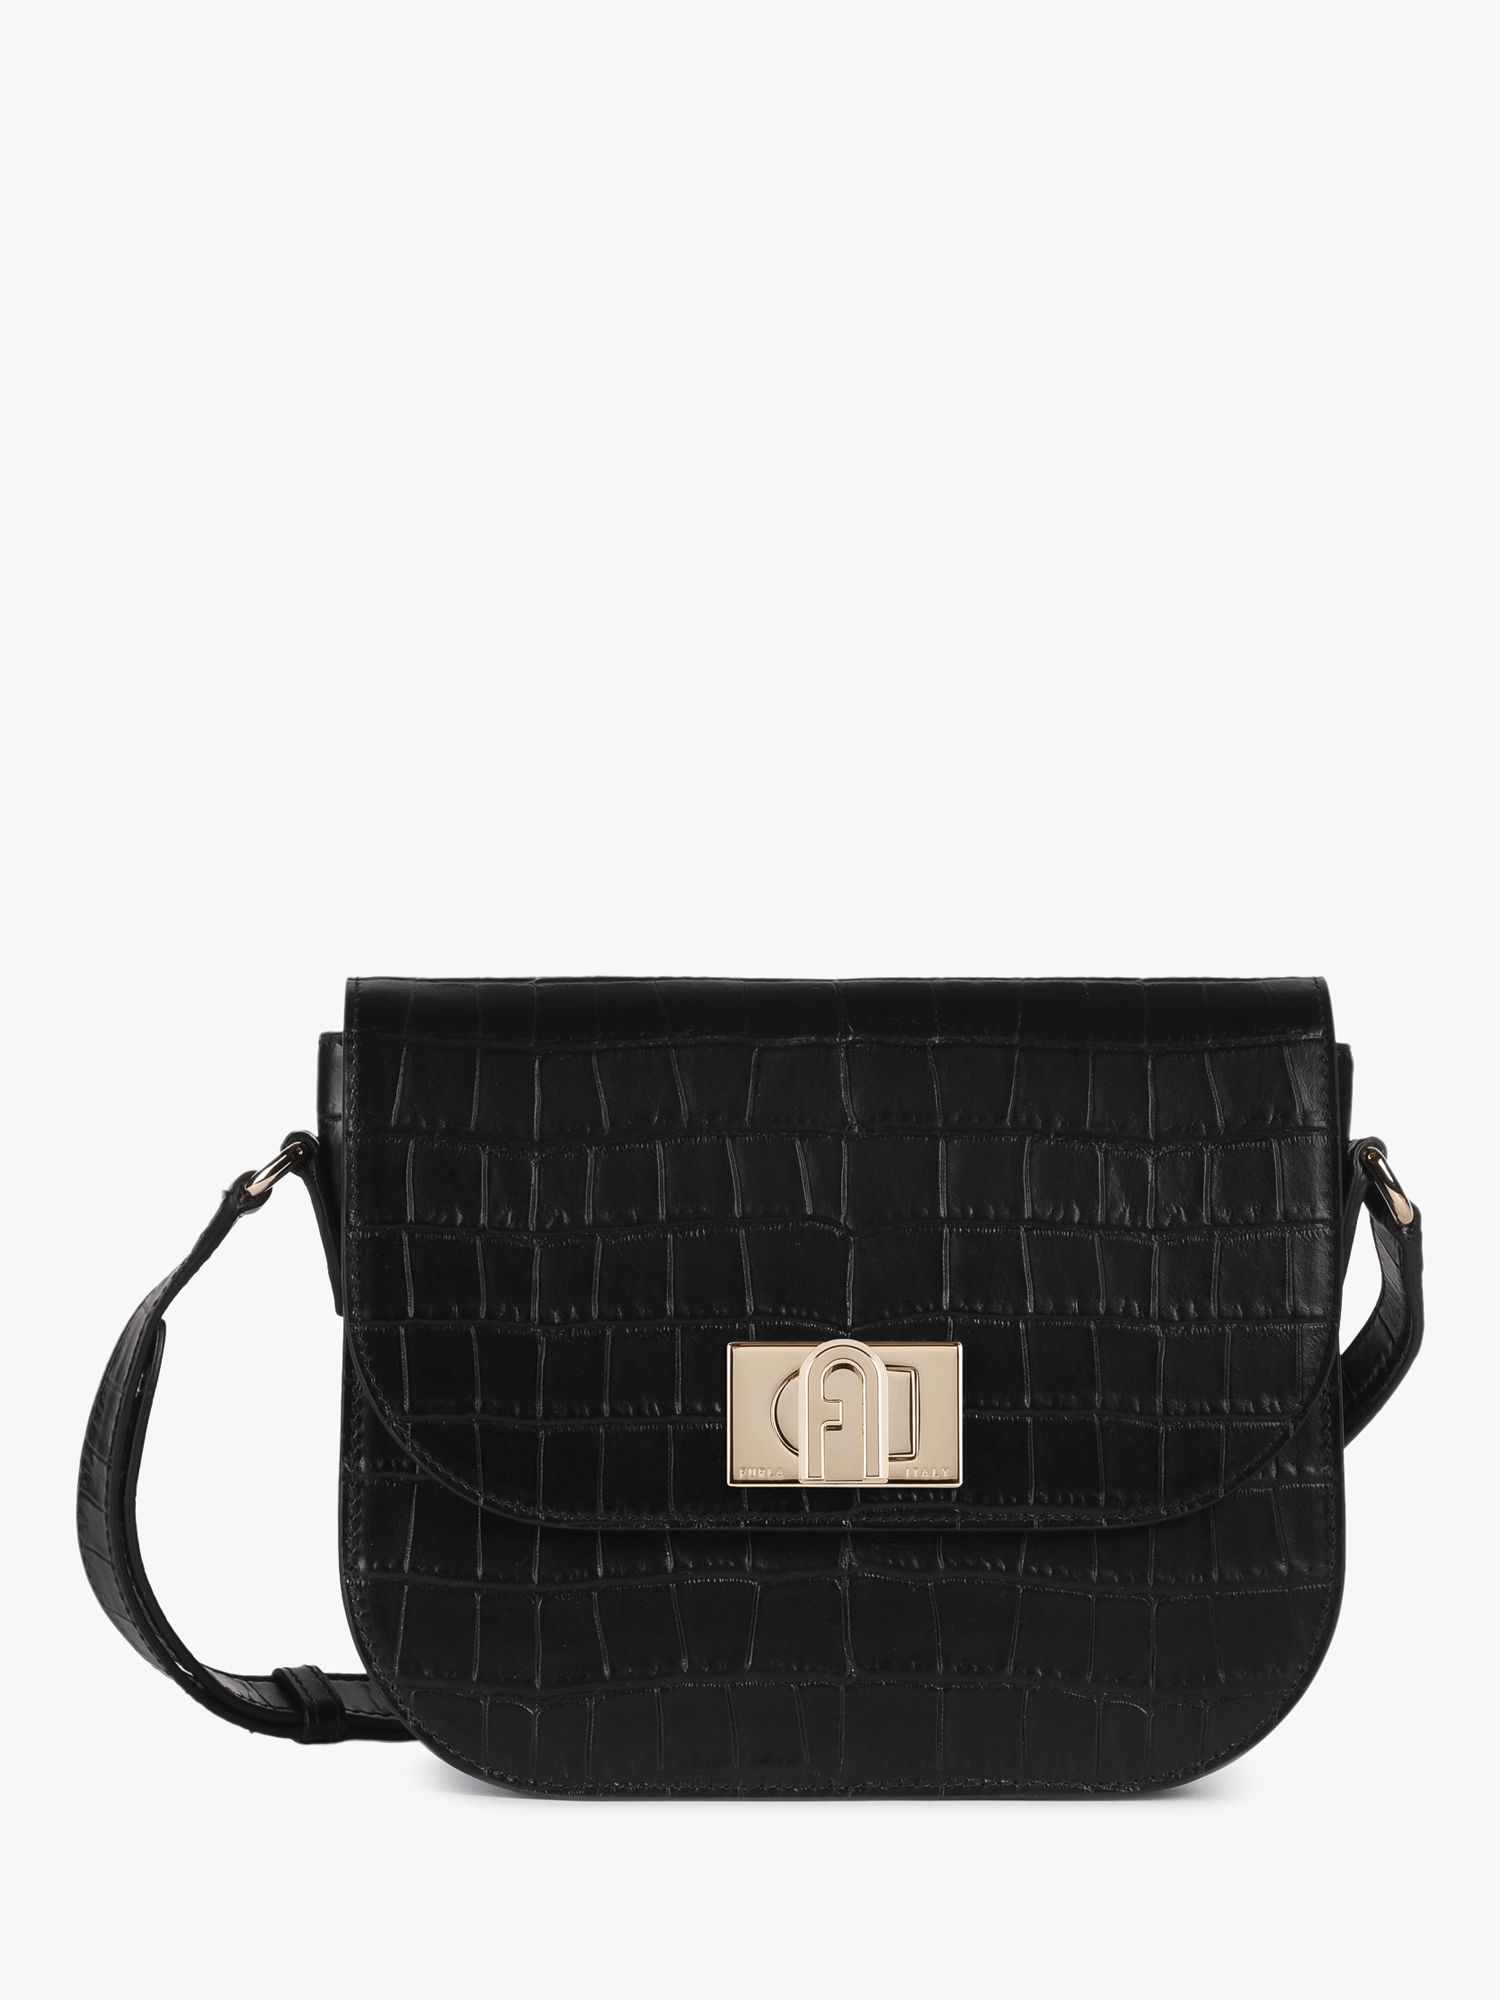 Furla Furla 1927 Leather Shoulder Bag, Snake Black